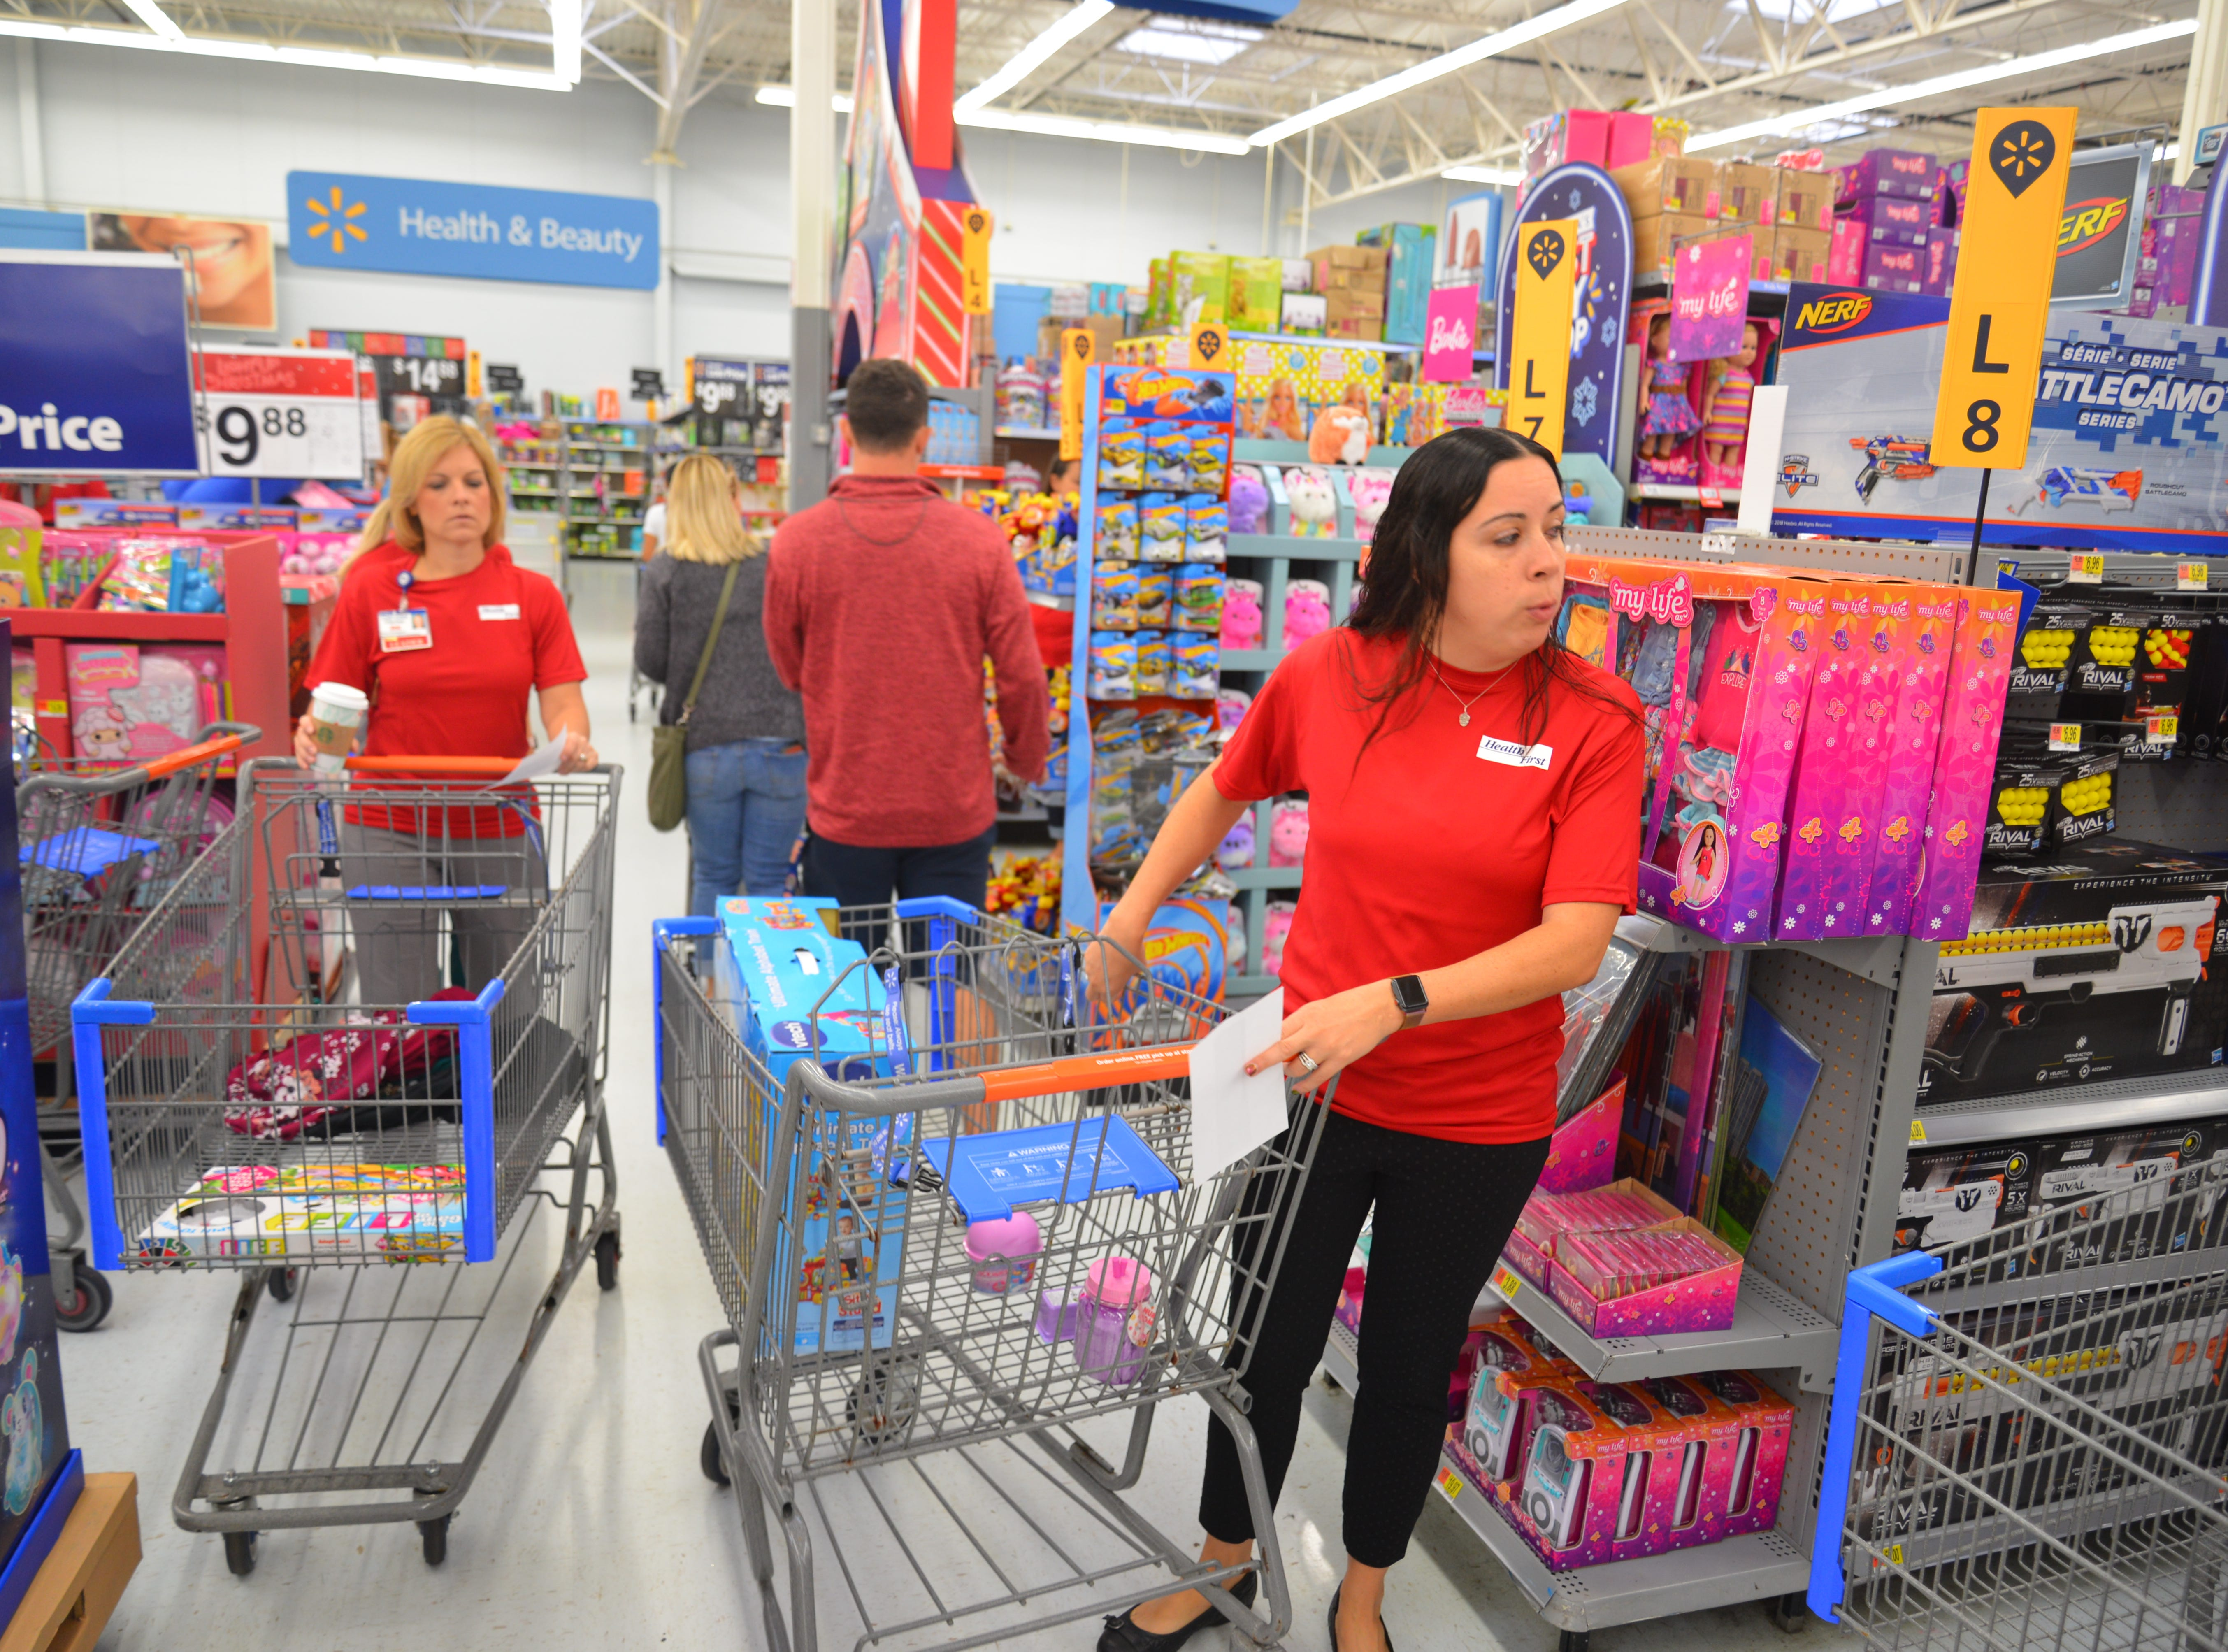 For the sixth year in a row, Health First partnered with the South Brevard Sharing Center to help fulfill wish lists for children who might not receive gifts for the holidays. On Tuesday morning 80 Health First associates in red shirts and volunteers from the South Brevard Sharing Center  descended on Walmart in Viera to purchase gifts for more than 600 children in Brevard County Ñ many of whom are homeless Ñ as part of the Sharing CenterÕs ÒChildren Without Christmas Toy Drive.Ó